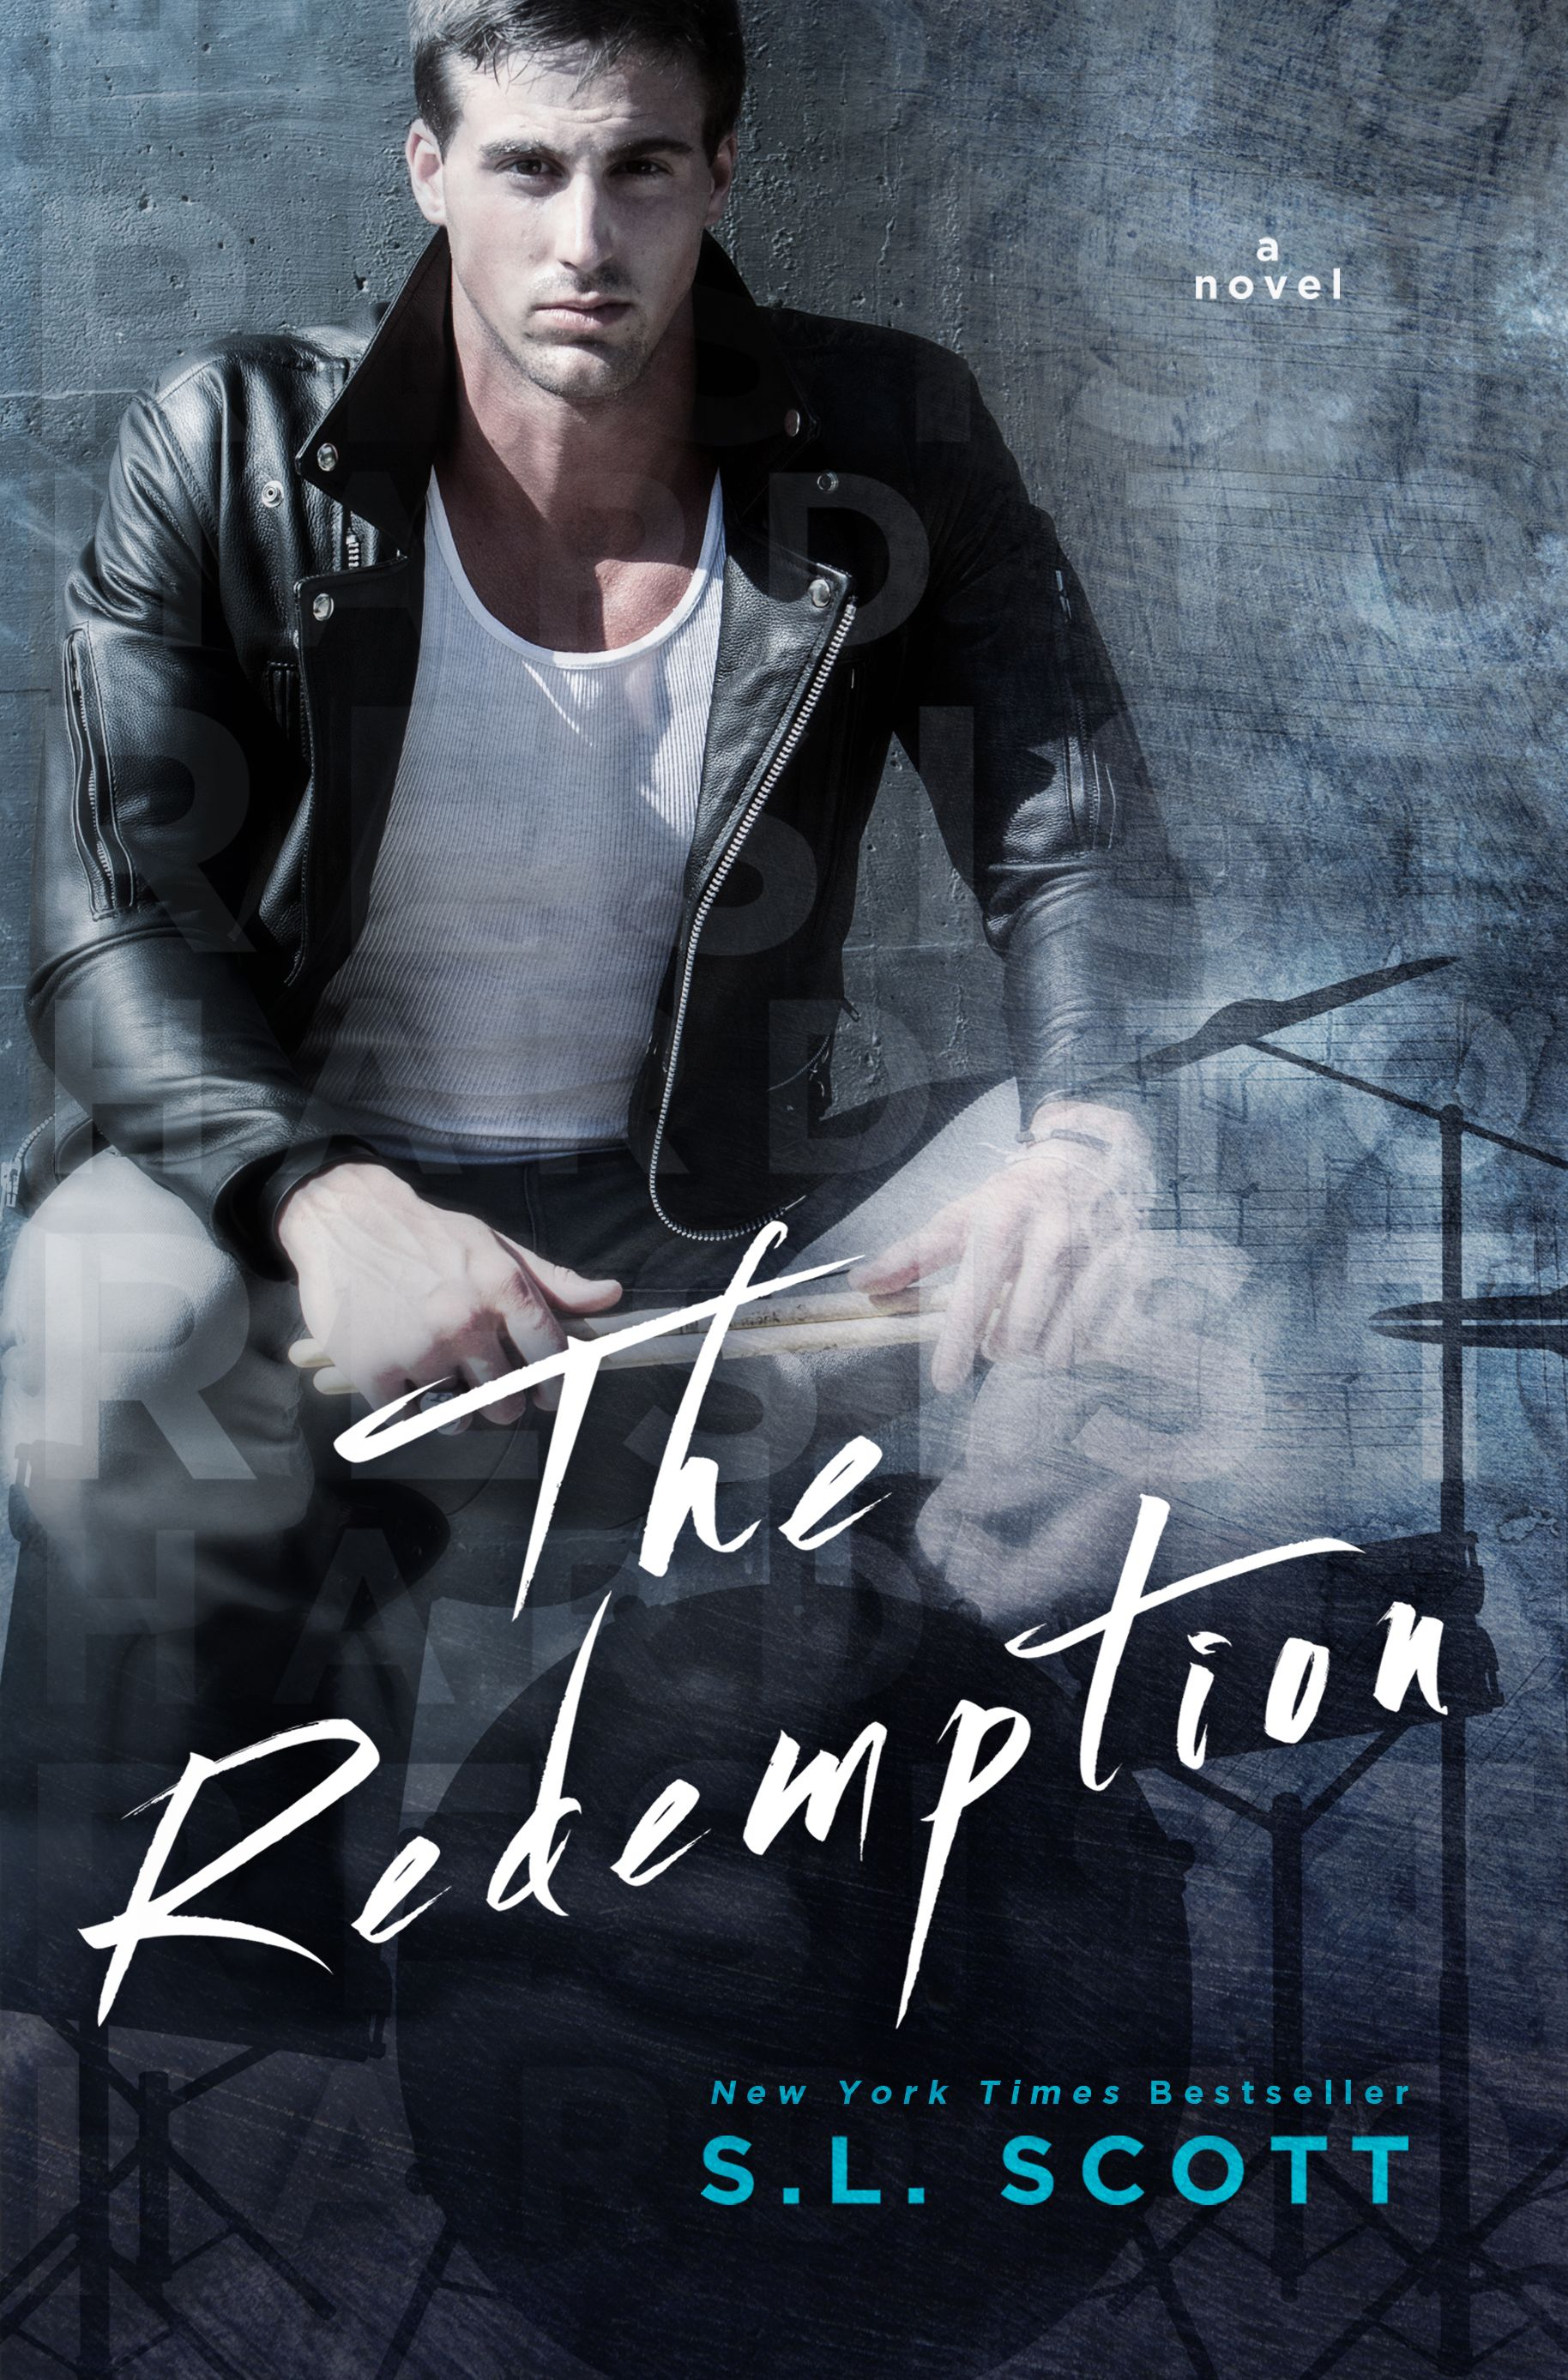 Release Day Launch The Redemption by S.L. Scott New